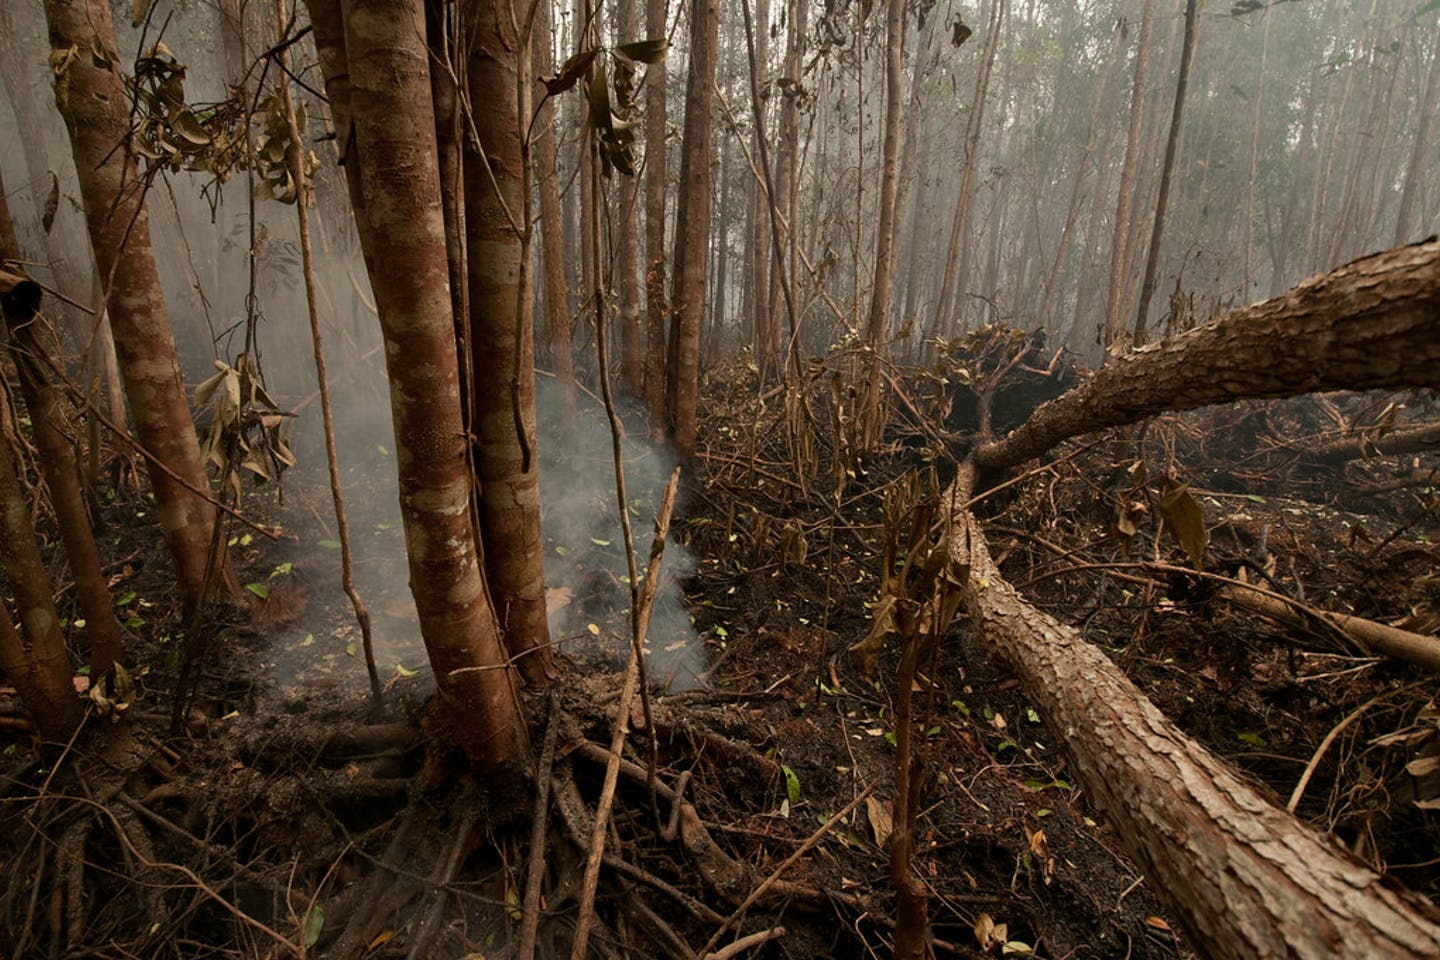 Peat burns in the Tumbang Nusa research forest outside Palangka Raya, Central Kalimantan in Indonesia